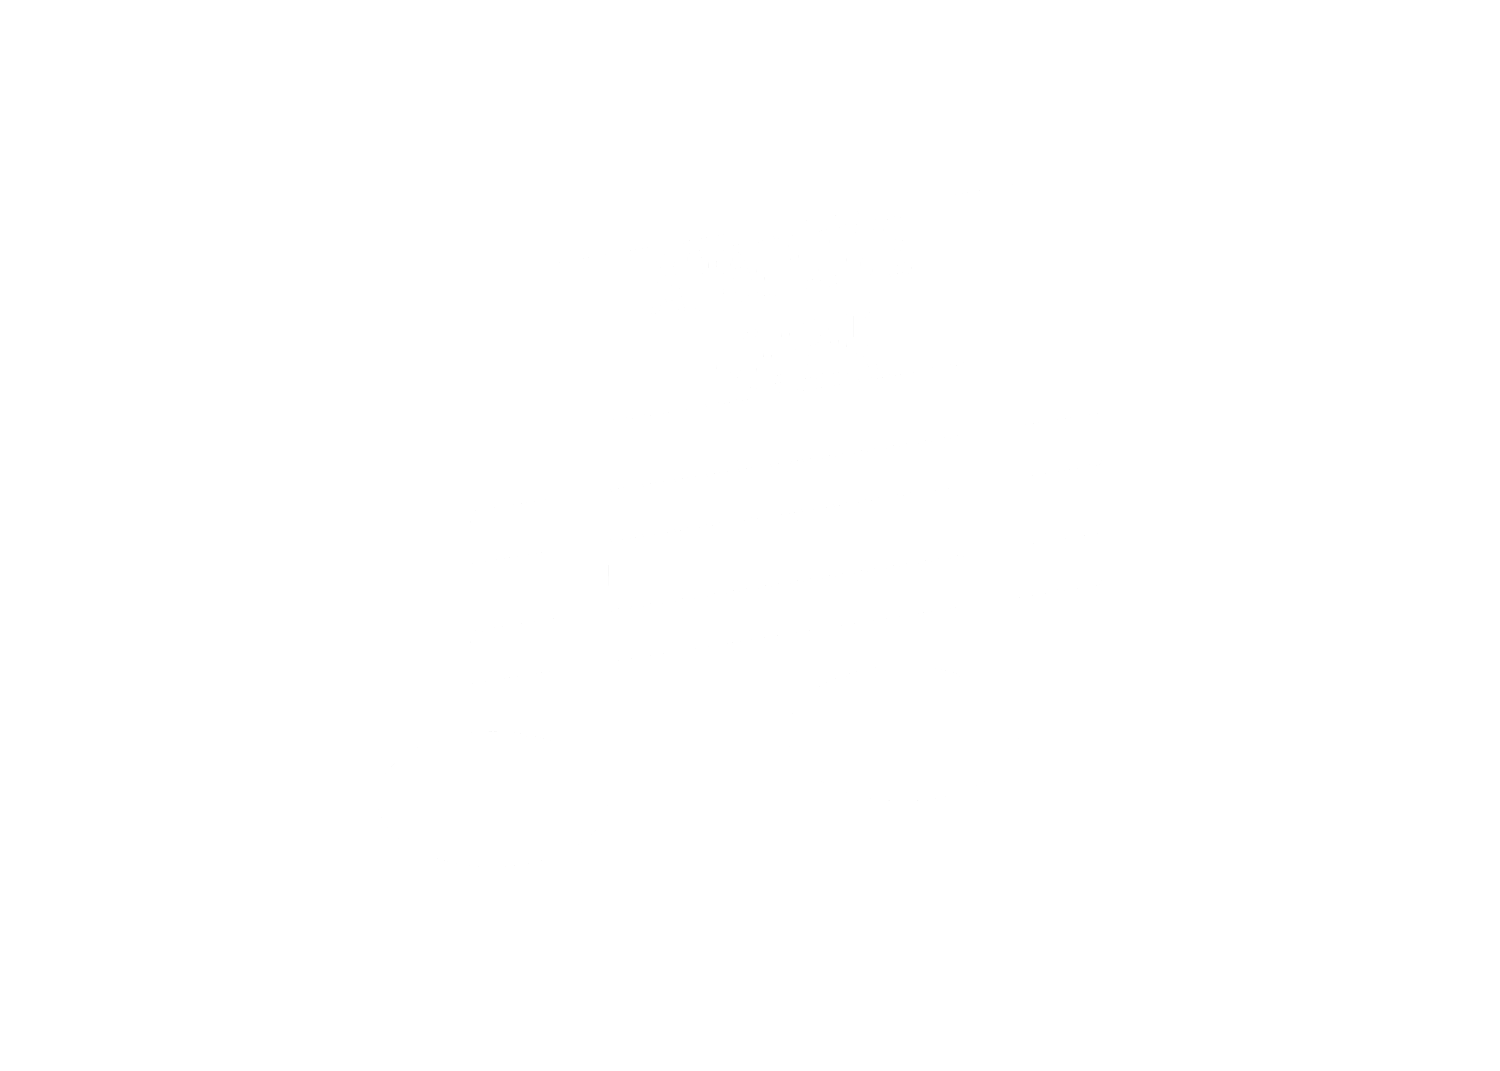 Absolute Musik | Audio Engineering | Mixing and Mastering | Production | Tutorials